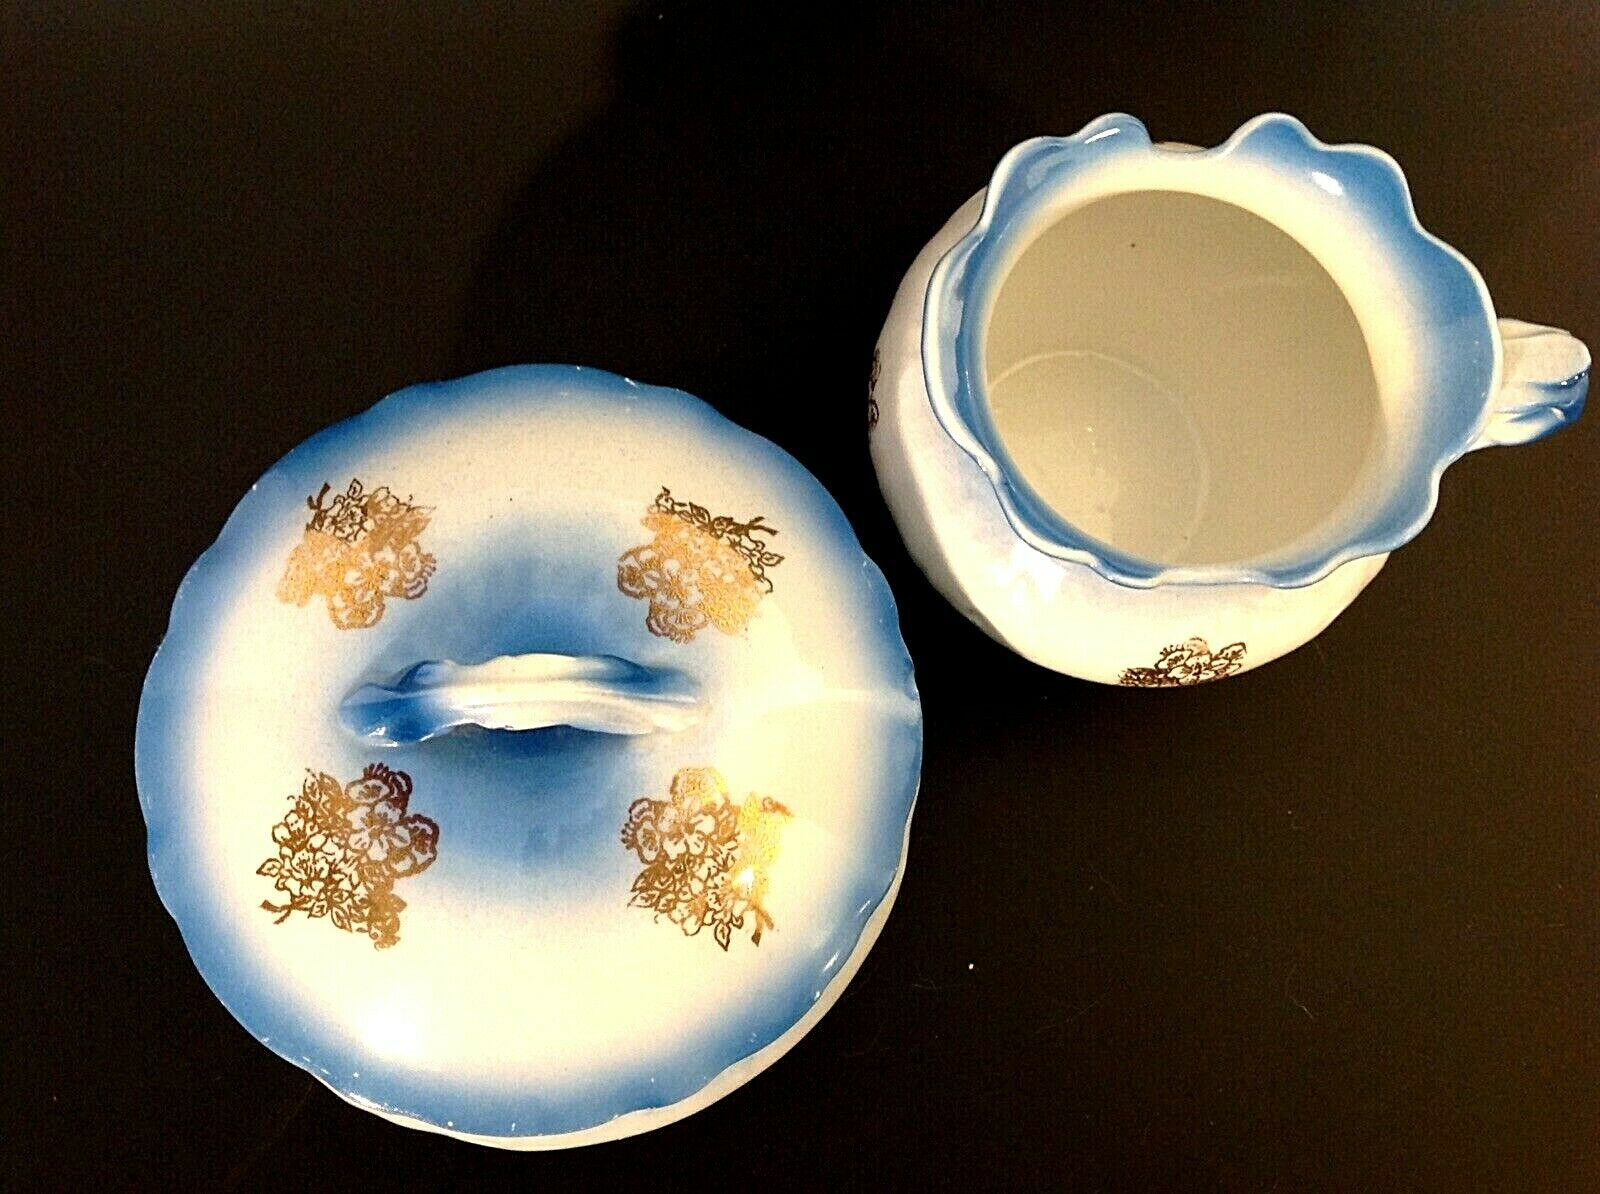 ANTIQUE SMITH PHILLIPS VANITY SET FENIX BLUE GOLD DESIGNS TRINKET BOX SHAVE CUP Без бренда - фотография #8